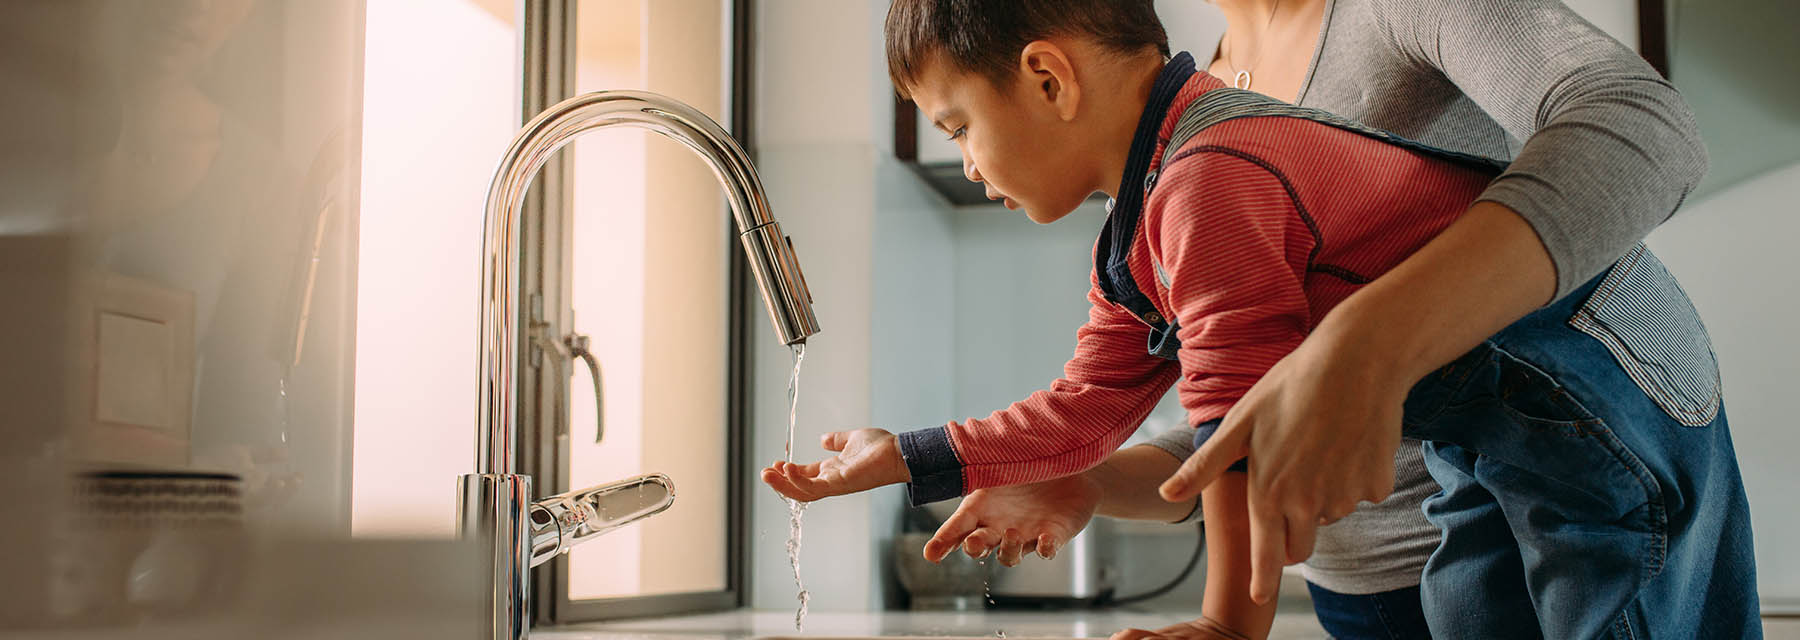 mother helping her son wash his hands under a kitchen faucet